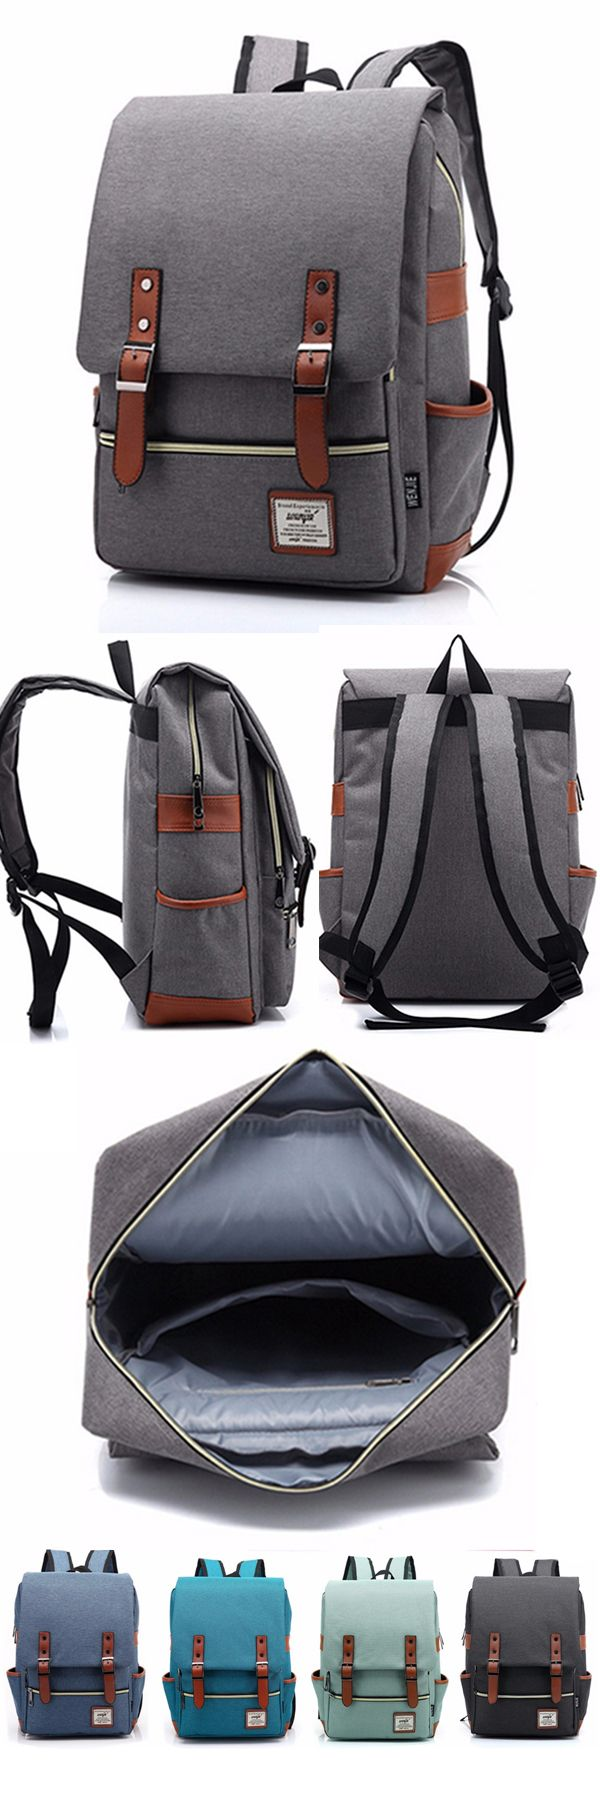 US$31.86 + Free shipping. 14 inches canvas classic laptop backpacks, school backpack.